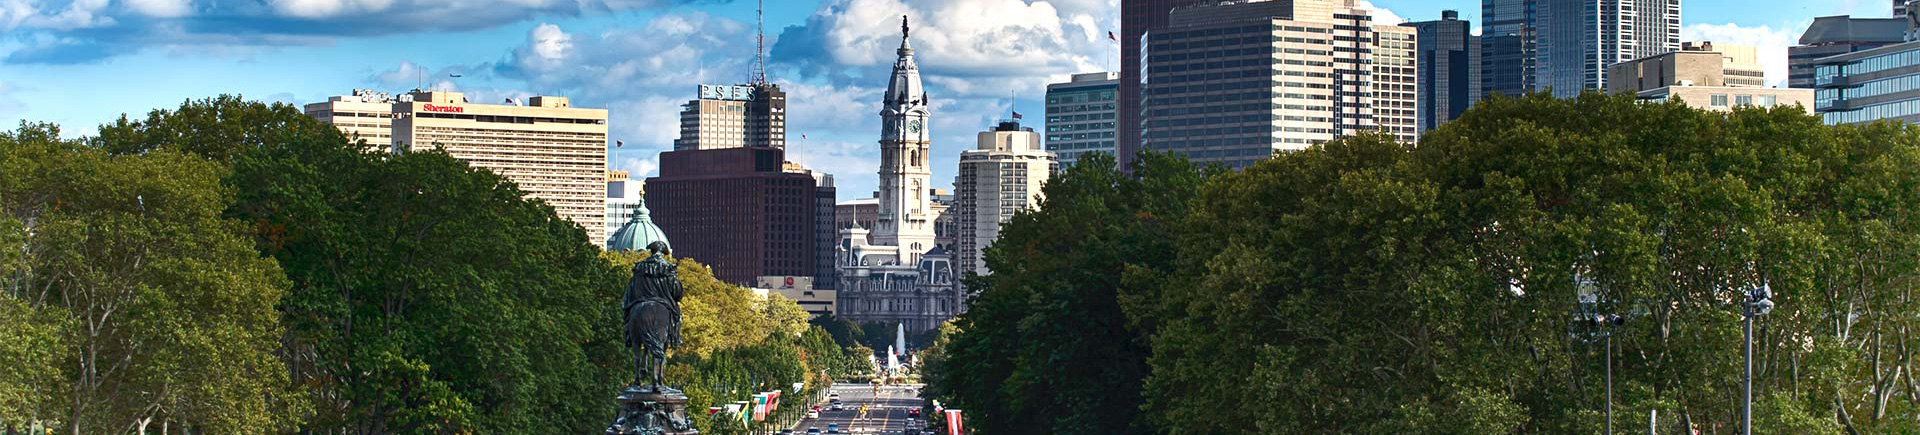 Park Towne Place Premier Apartment Homes in Philadelphia, PA - Benjamin Franklin Parkway